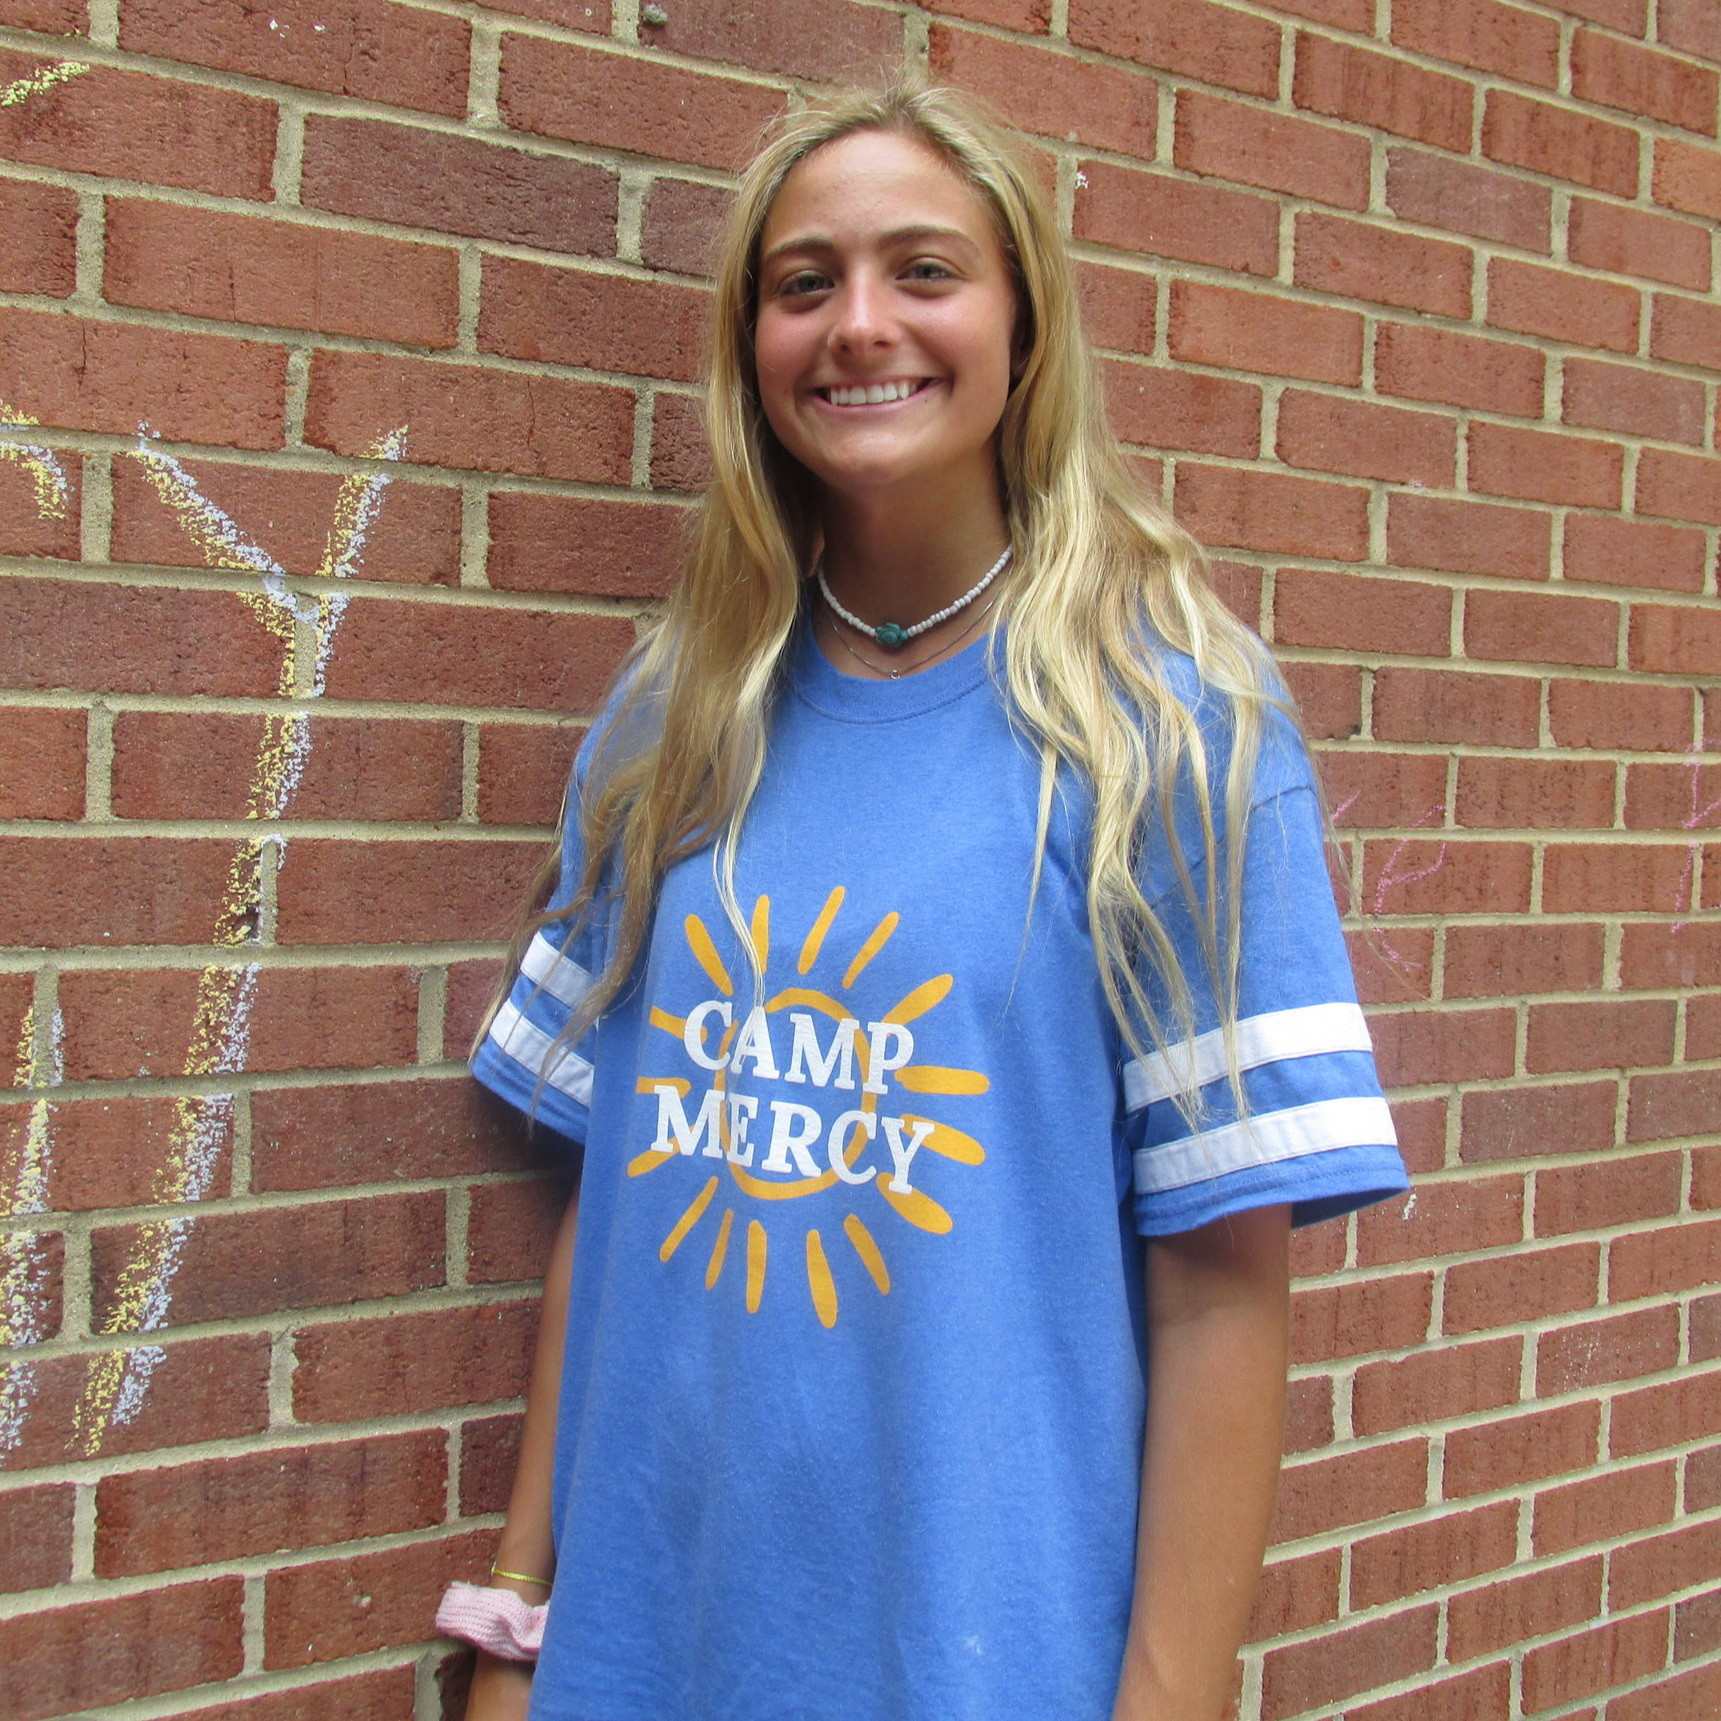 AShley Foley- Head Counselor - Hi Everyone! My name is Ashley Foley and I am a incoming Freshman in College. I graduated from The Academy of The Holy Cross, and attended Our Lady of Mercy for middle school. I am very excited to be a lead counselor at Mercy Camp, and look forward to meeting both you and your kids! Feel free to email me, or the other counselors with any questions you may have! Happy summer!